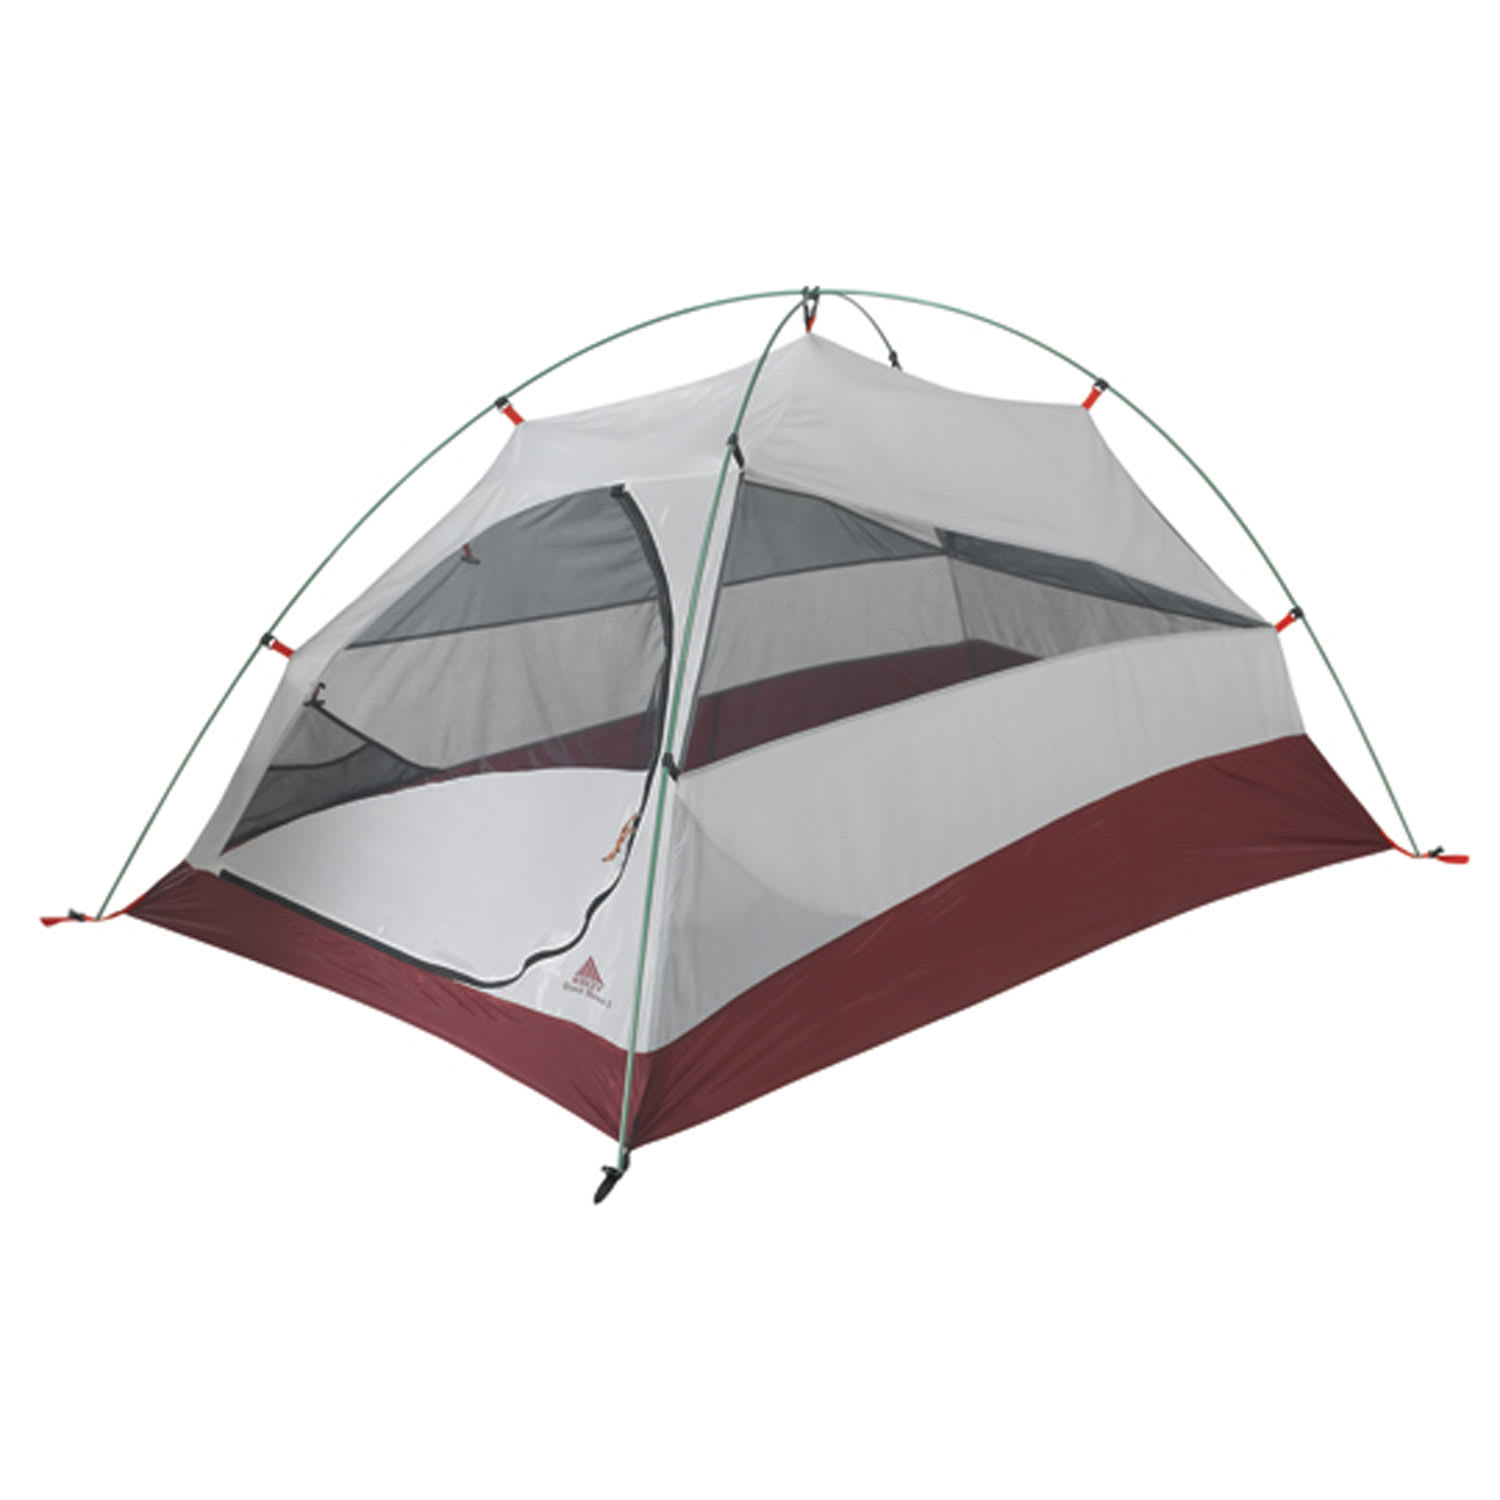 Shop for Kelty Grand Mesa 4 Person Trail Tent